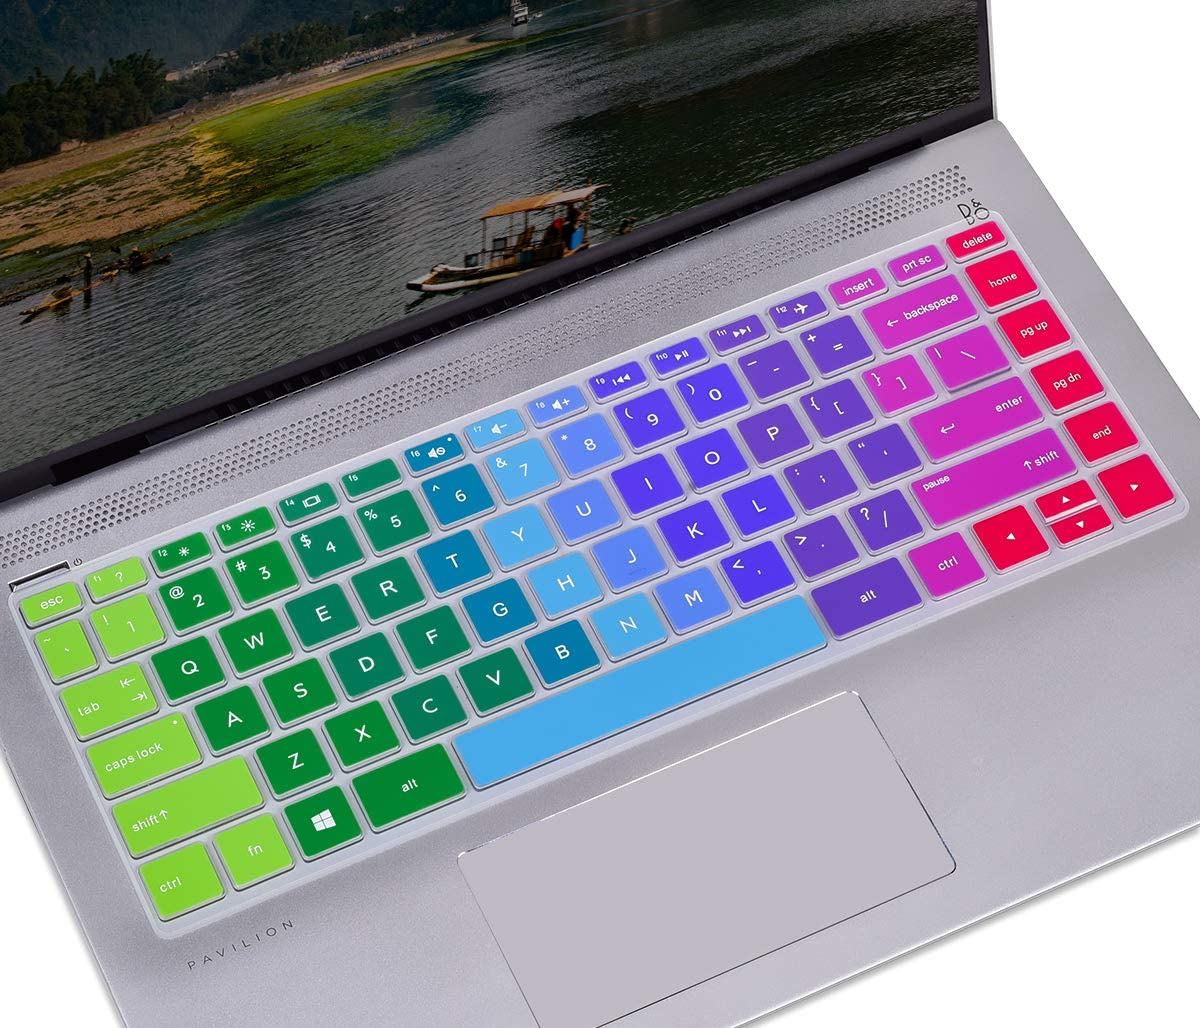 CASEDAO Keyboard Cover for 2019 HP 14 inch Laptop/New HP Pavilion x360 14 inch Keyboard Cover 14M-BA 14M-BF 14M-CD 14M-DH 14-BW 14-cm 14-CF Series HP 14 inch Keyboard Cover Skin, Rainbow